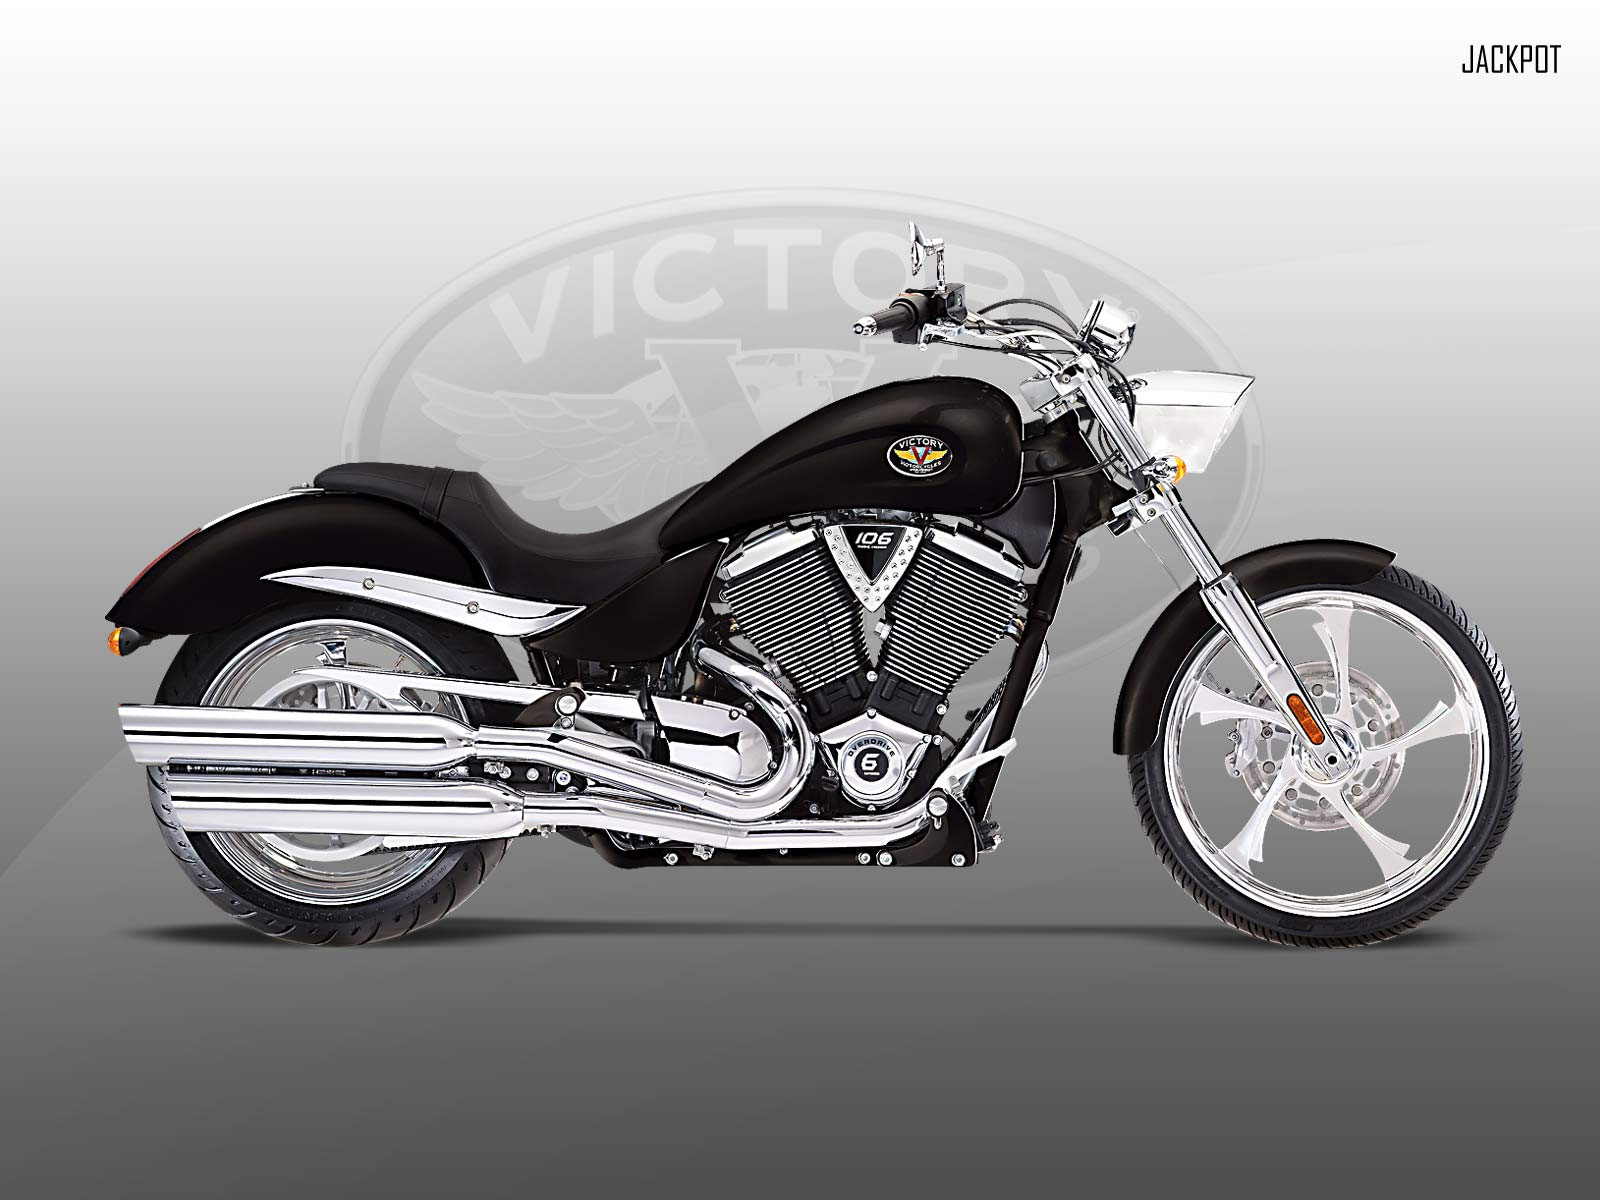 Victory Vegas Jackpot 2010 wallpapers #129347